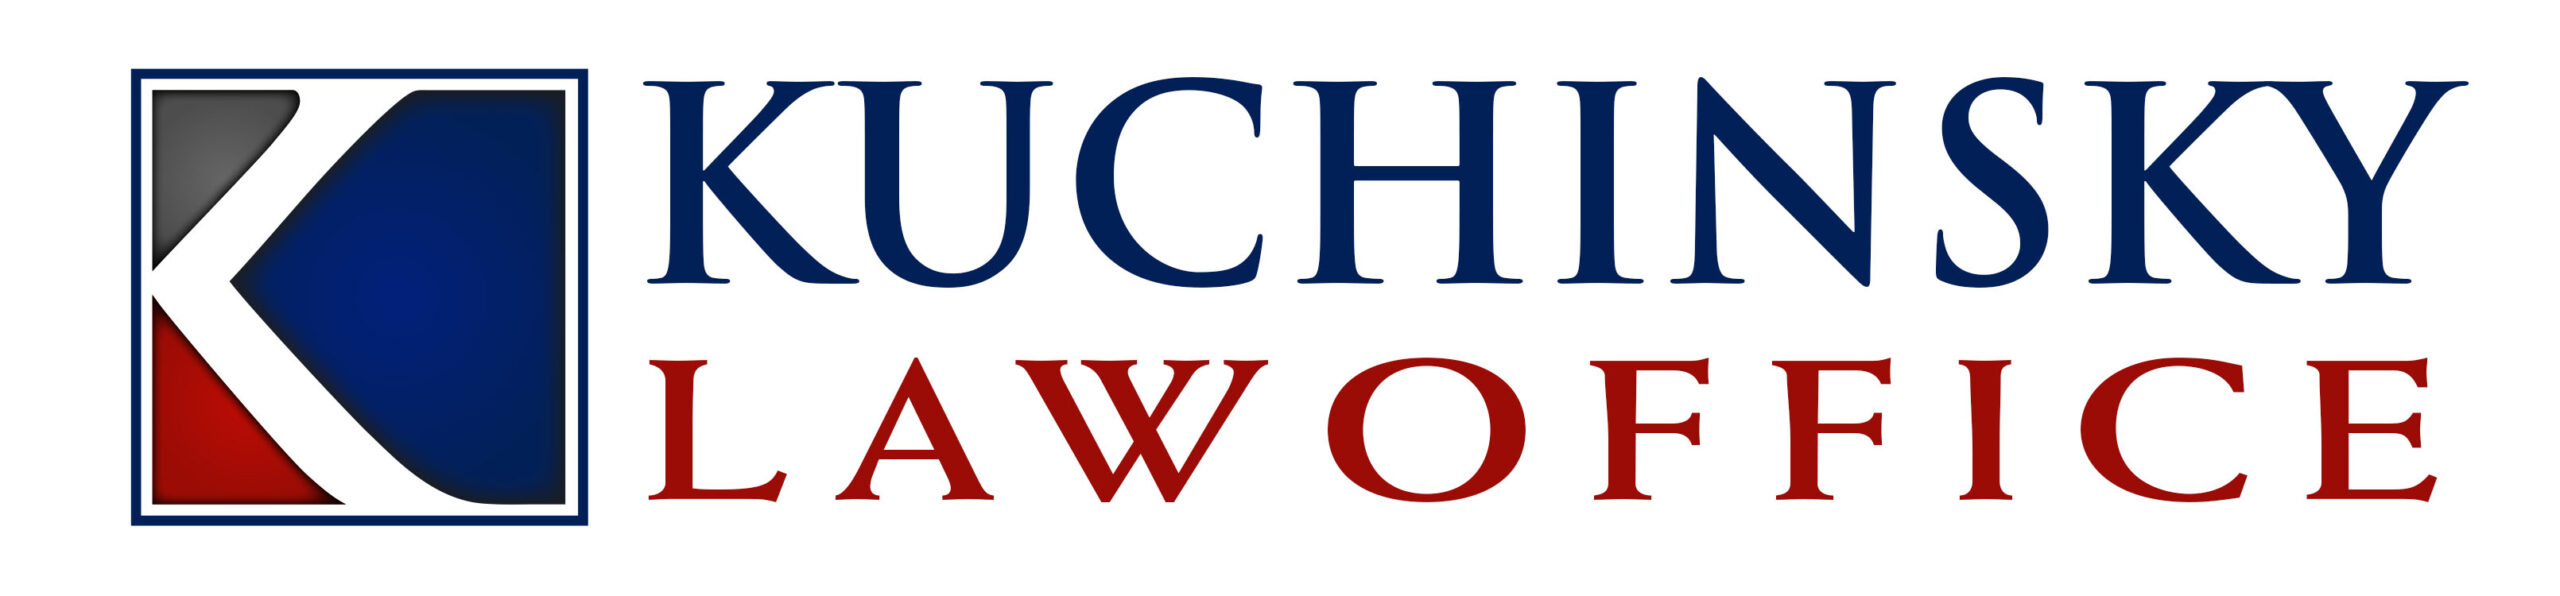 Kuchinsky Law Office